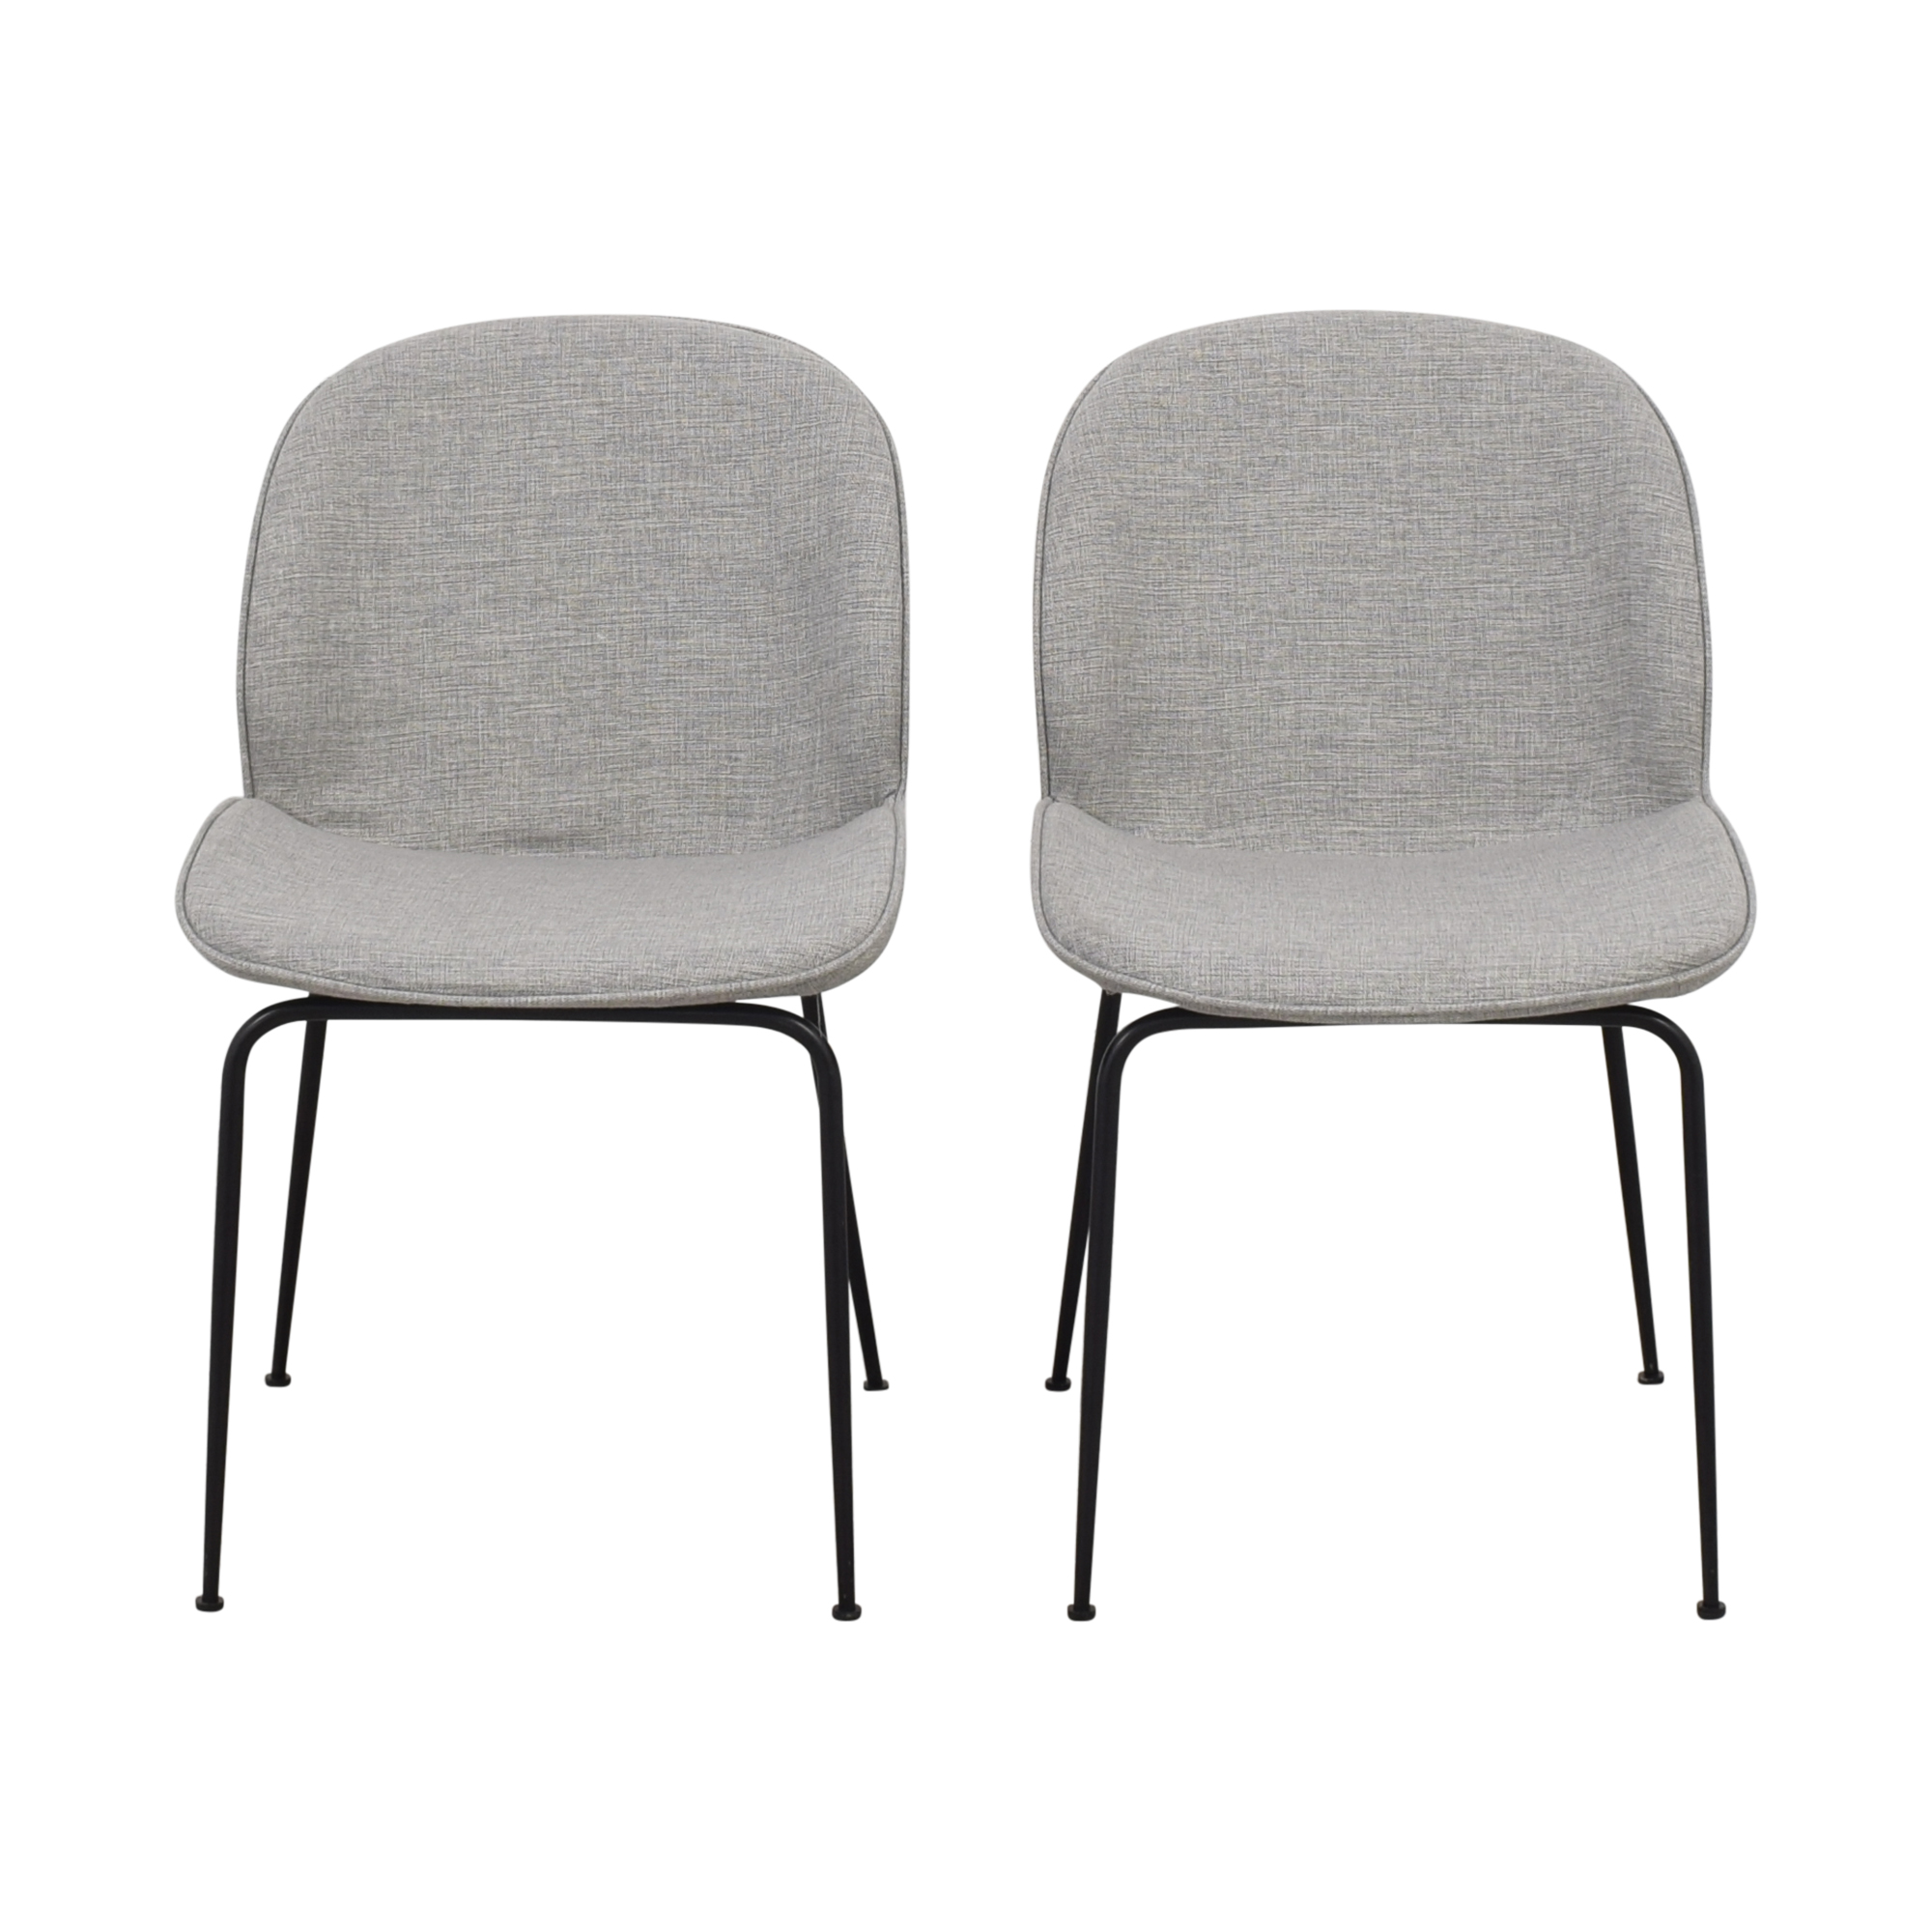 Stoll Upholstered Dining Chairs Chairs